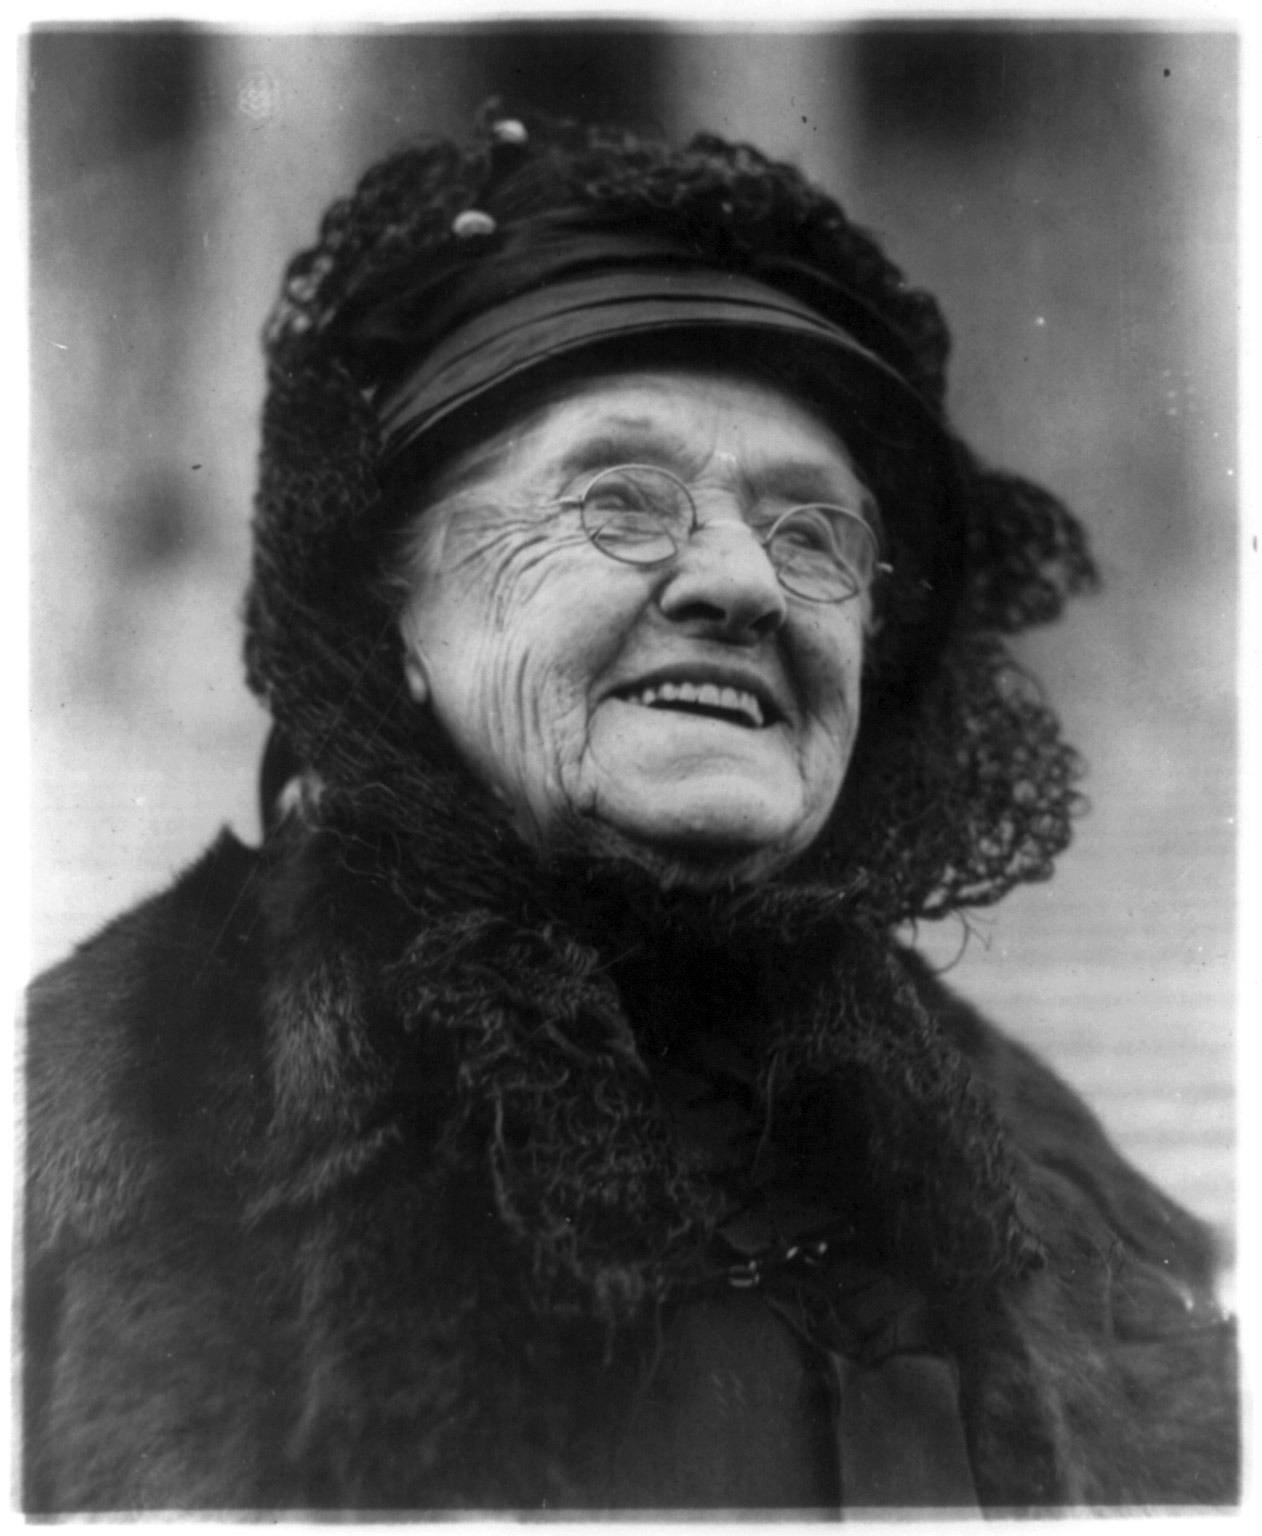 REBECCA FELTON became the first woman to serve in the U.S. Senate in 1922 (representing Georgia).